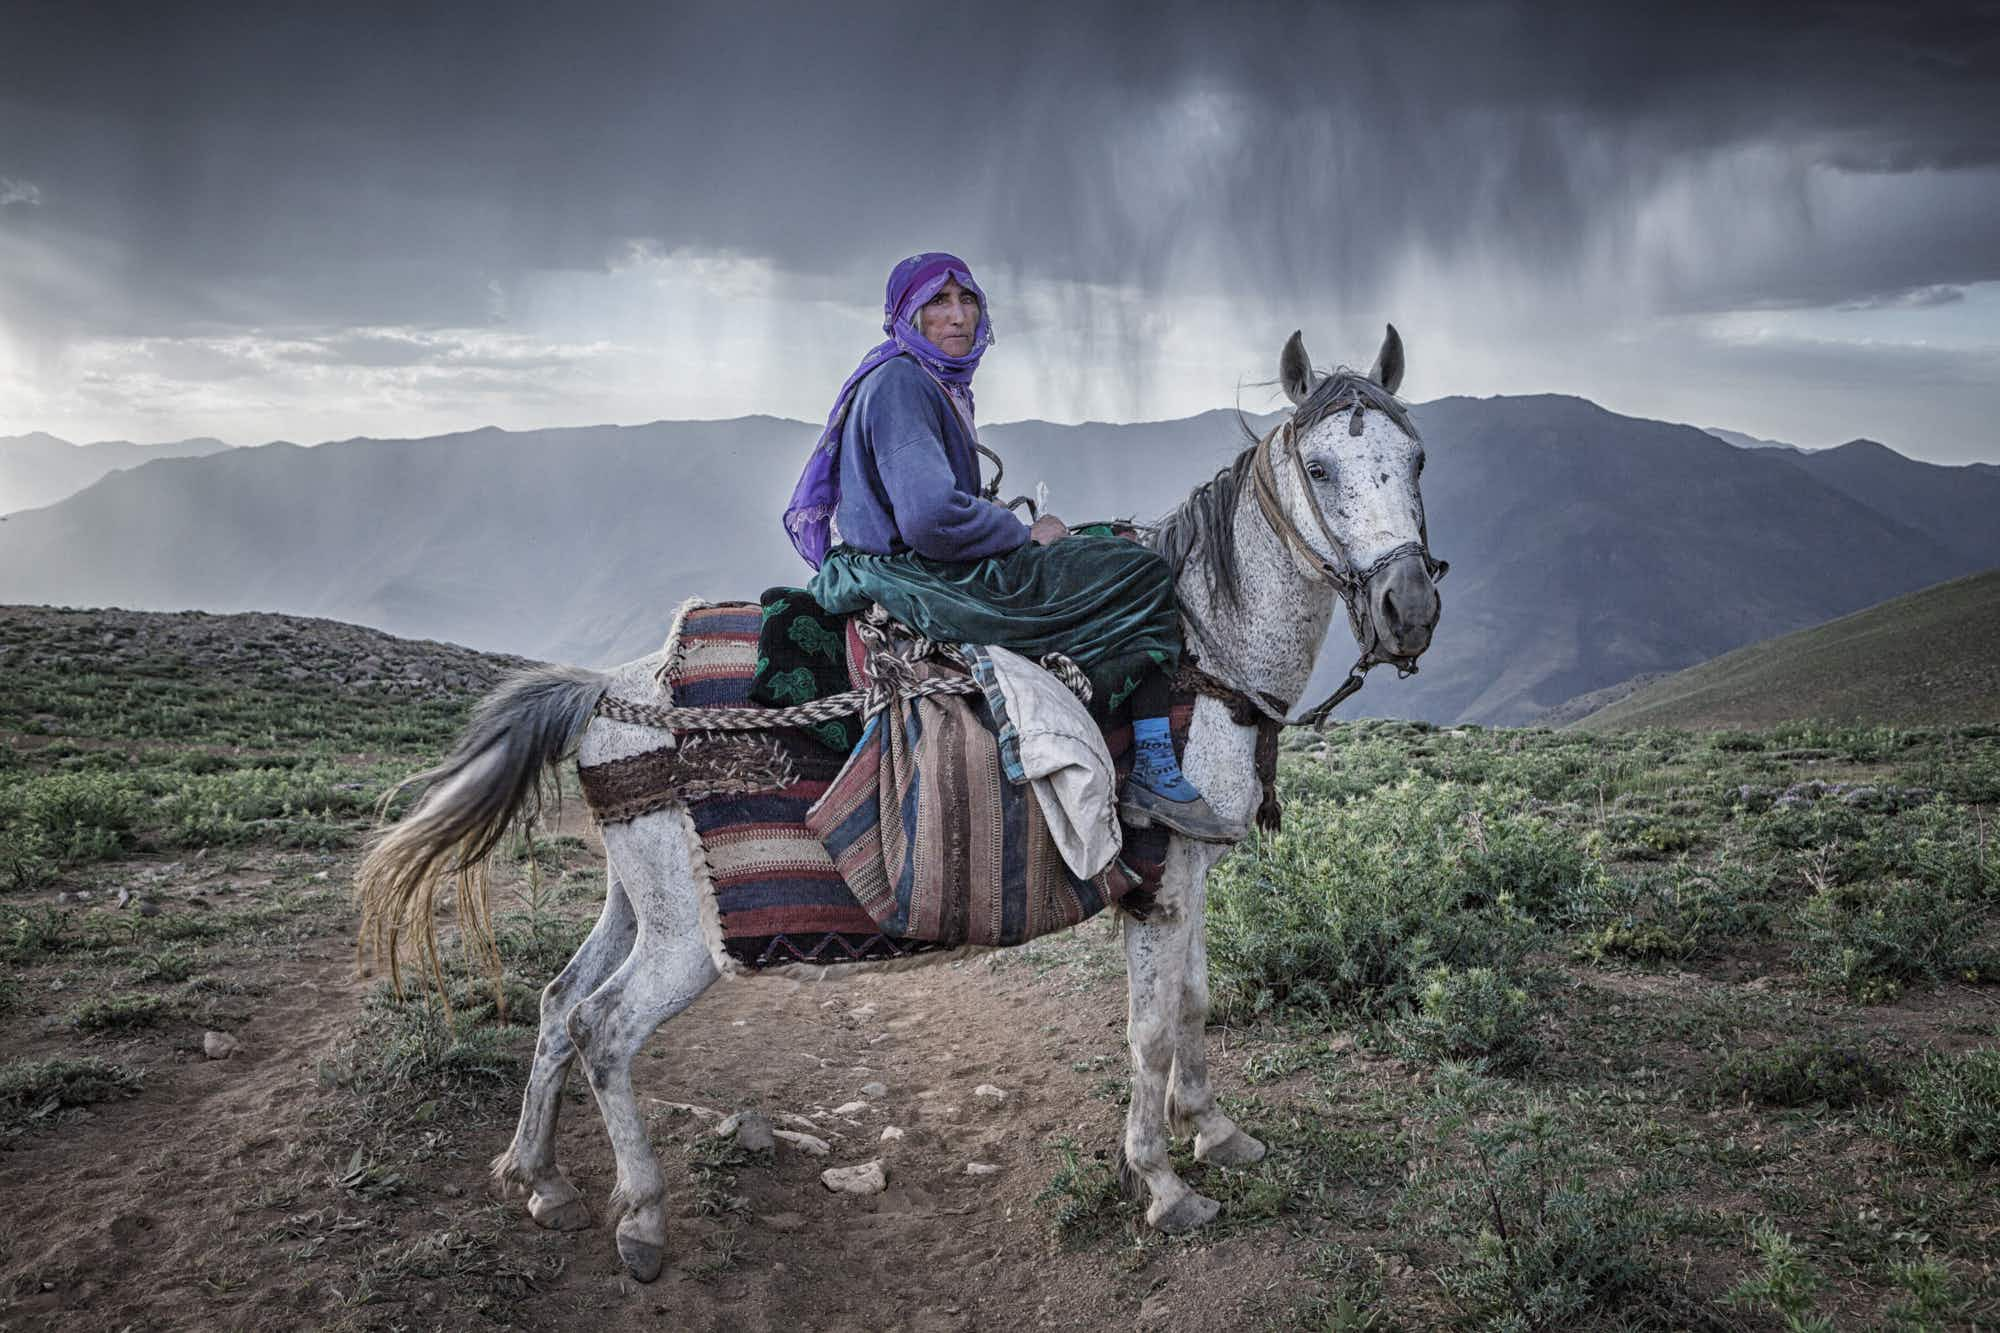 Photographer reveals remote Turkey's hidden side with these surprising and beautiful images